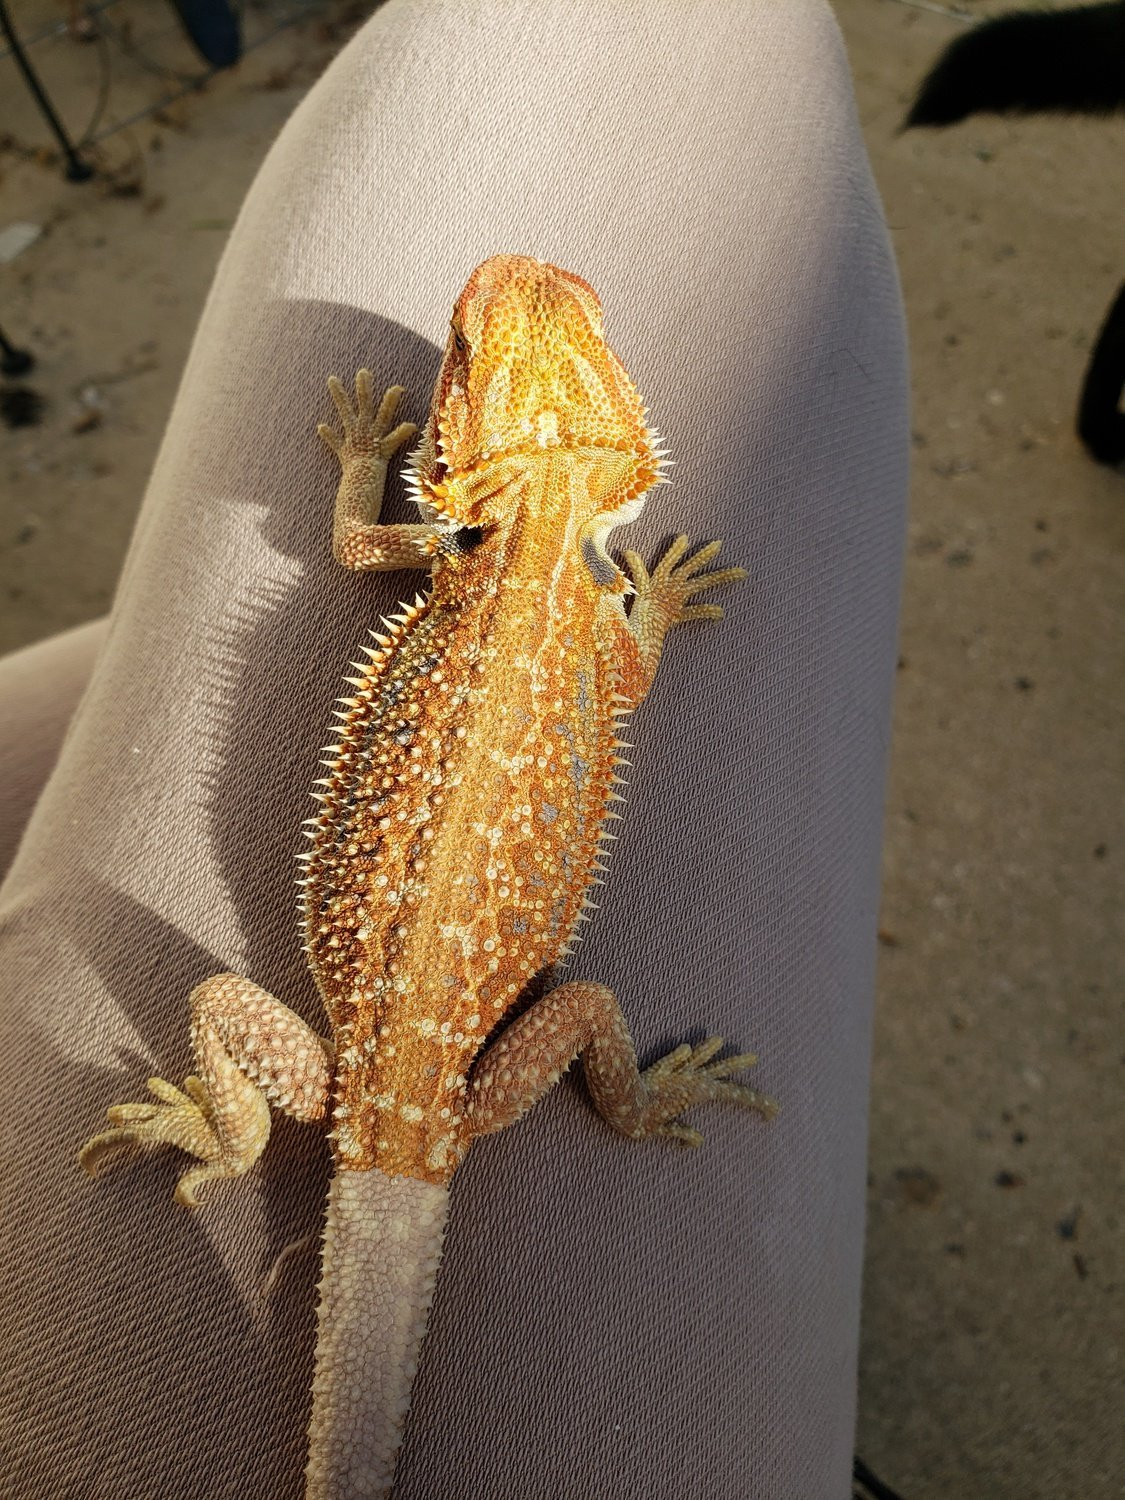 hypo dunner bearded dragon